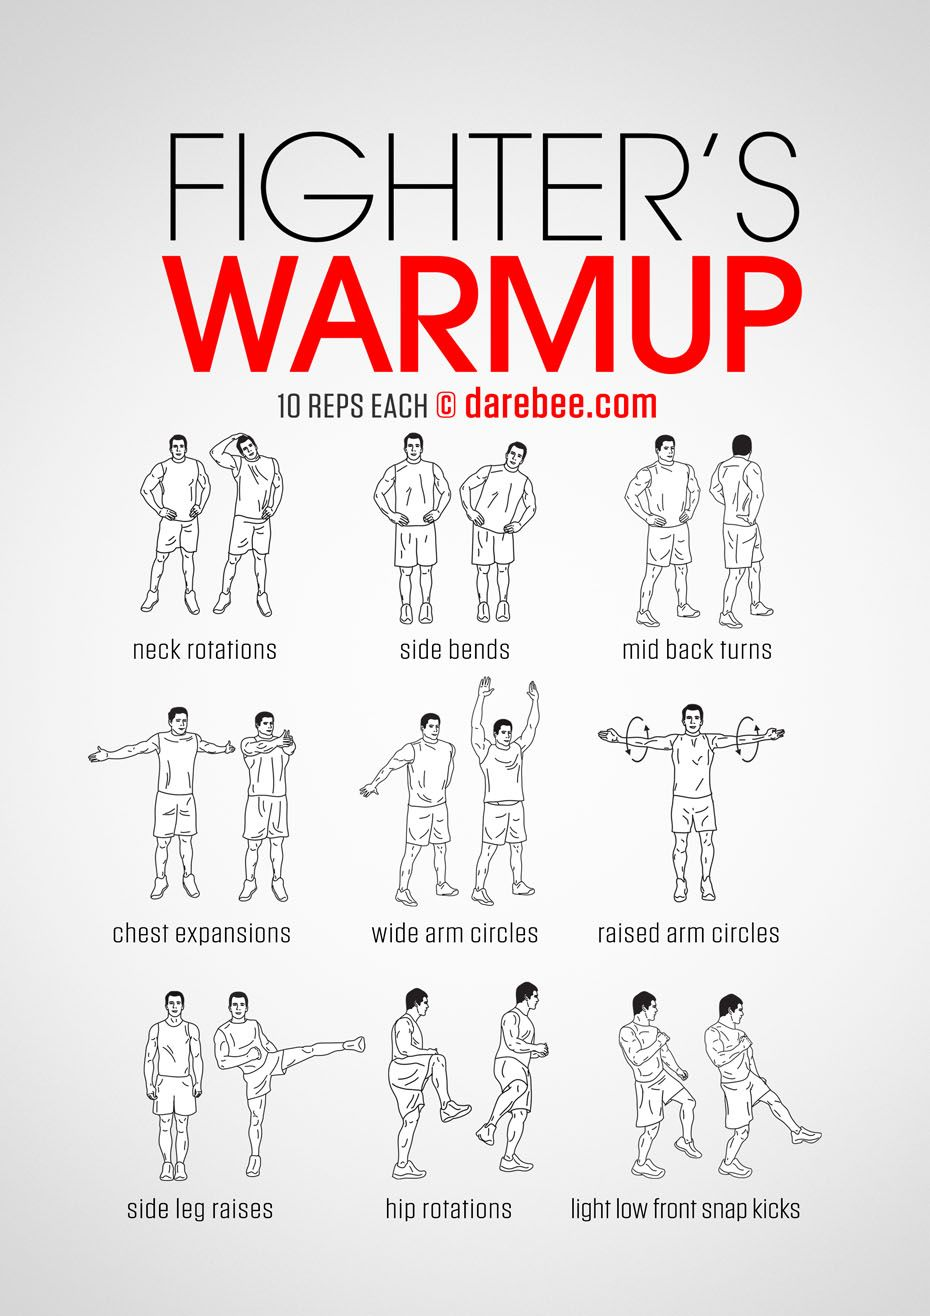 Httpdarebeeworkoutsfighters warmupml female fitness blueprints no equipment visual workouts fitness programs and challenges training and running tips recipes and nutrition advice malvernweather Gallery